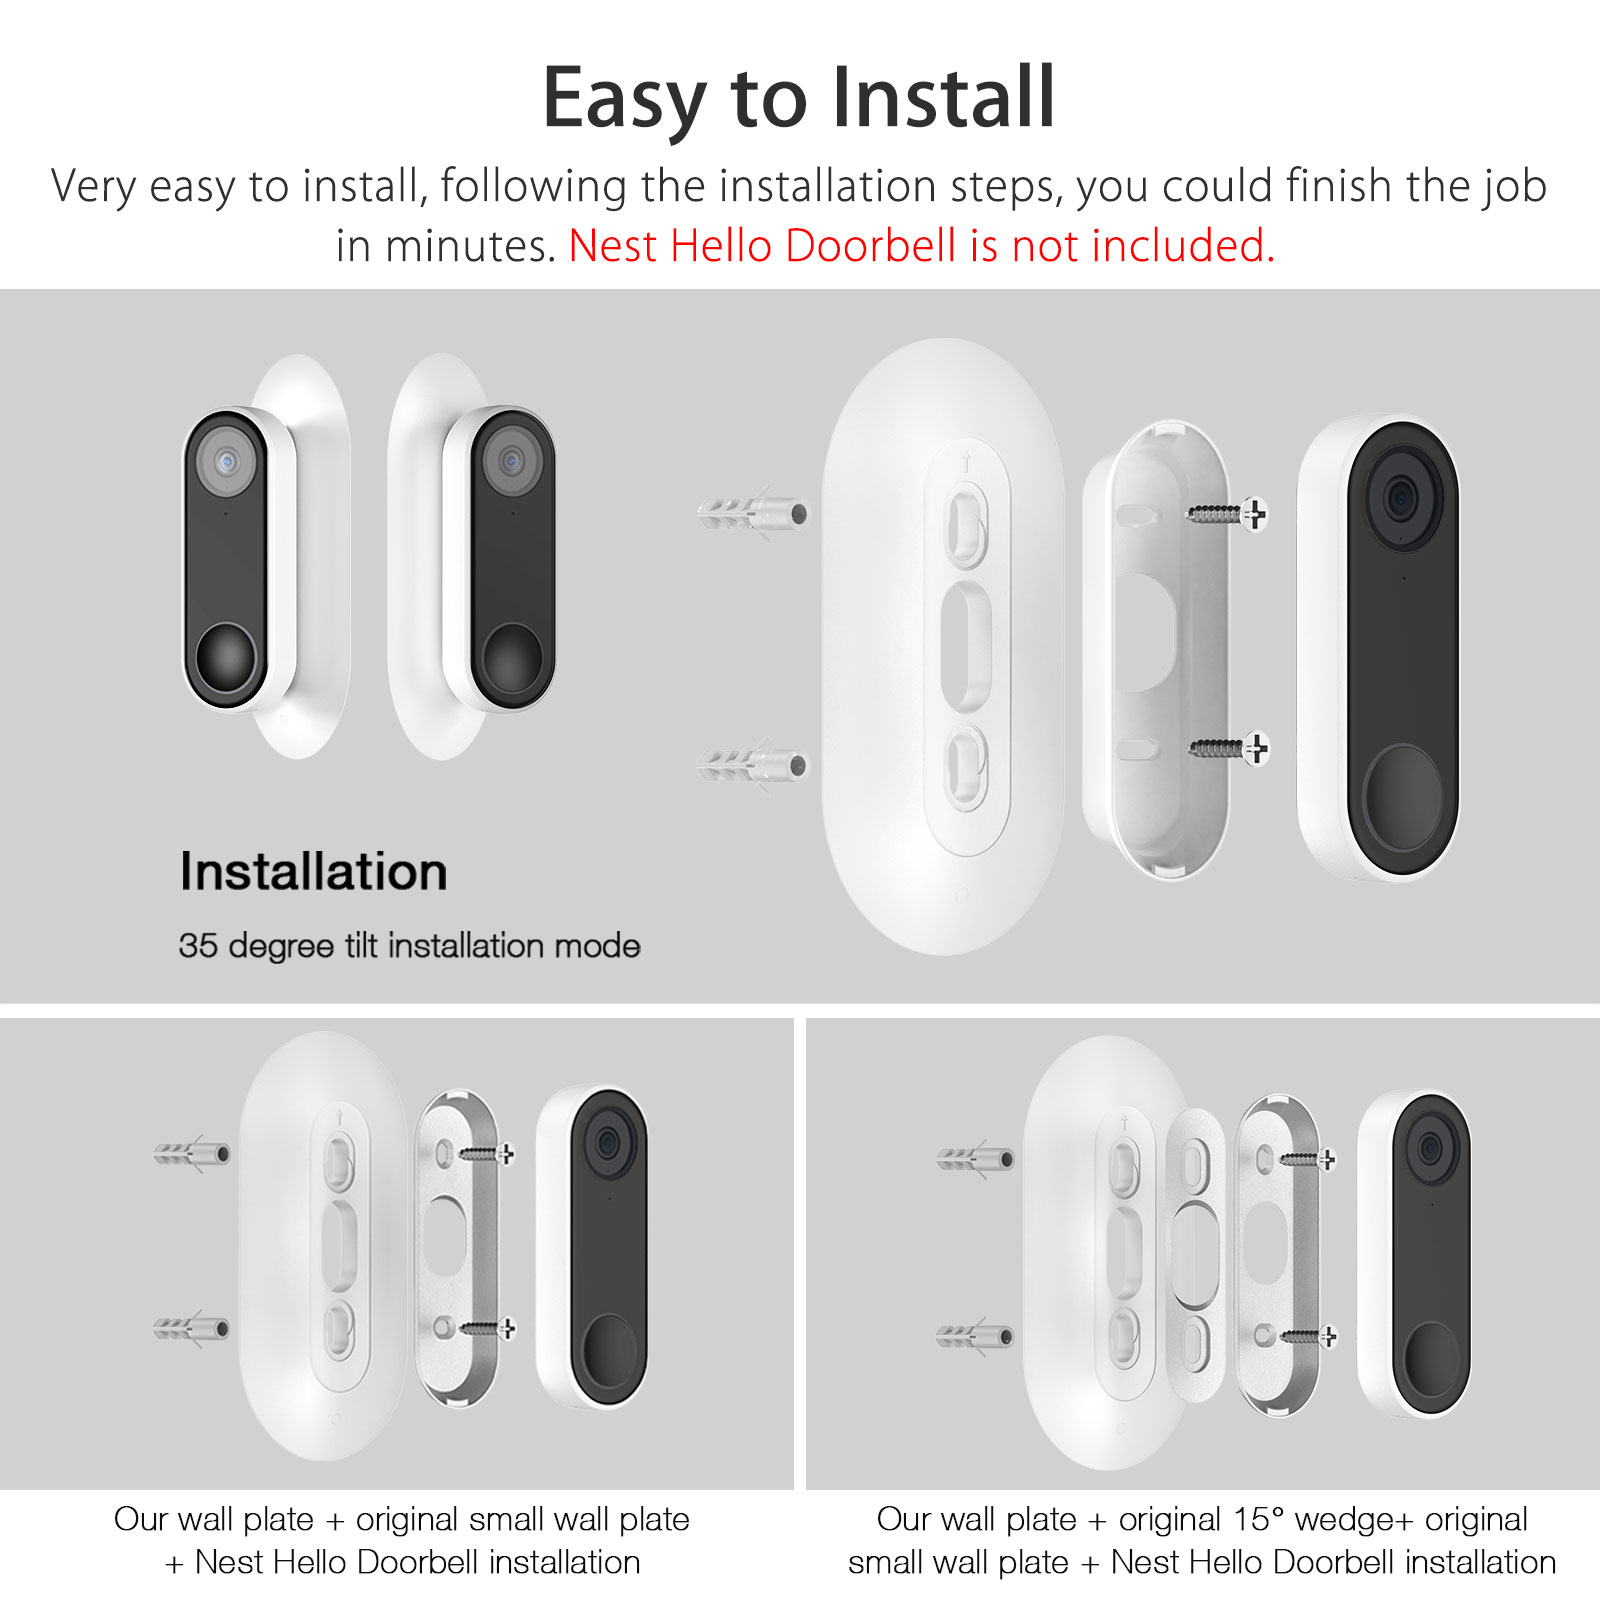 Wall Plate Hard Abs Plastic Wall Plate Bracket Cover For Nest Hello Video Doorbell Compatible With Doorbell Base And Adjustable Wedge